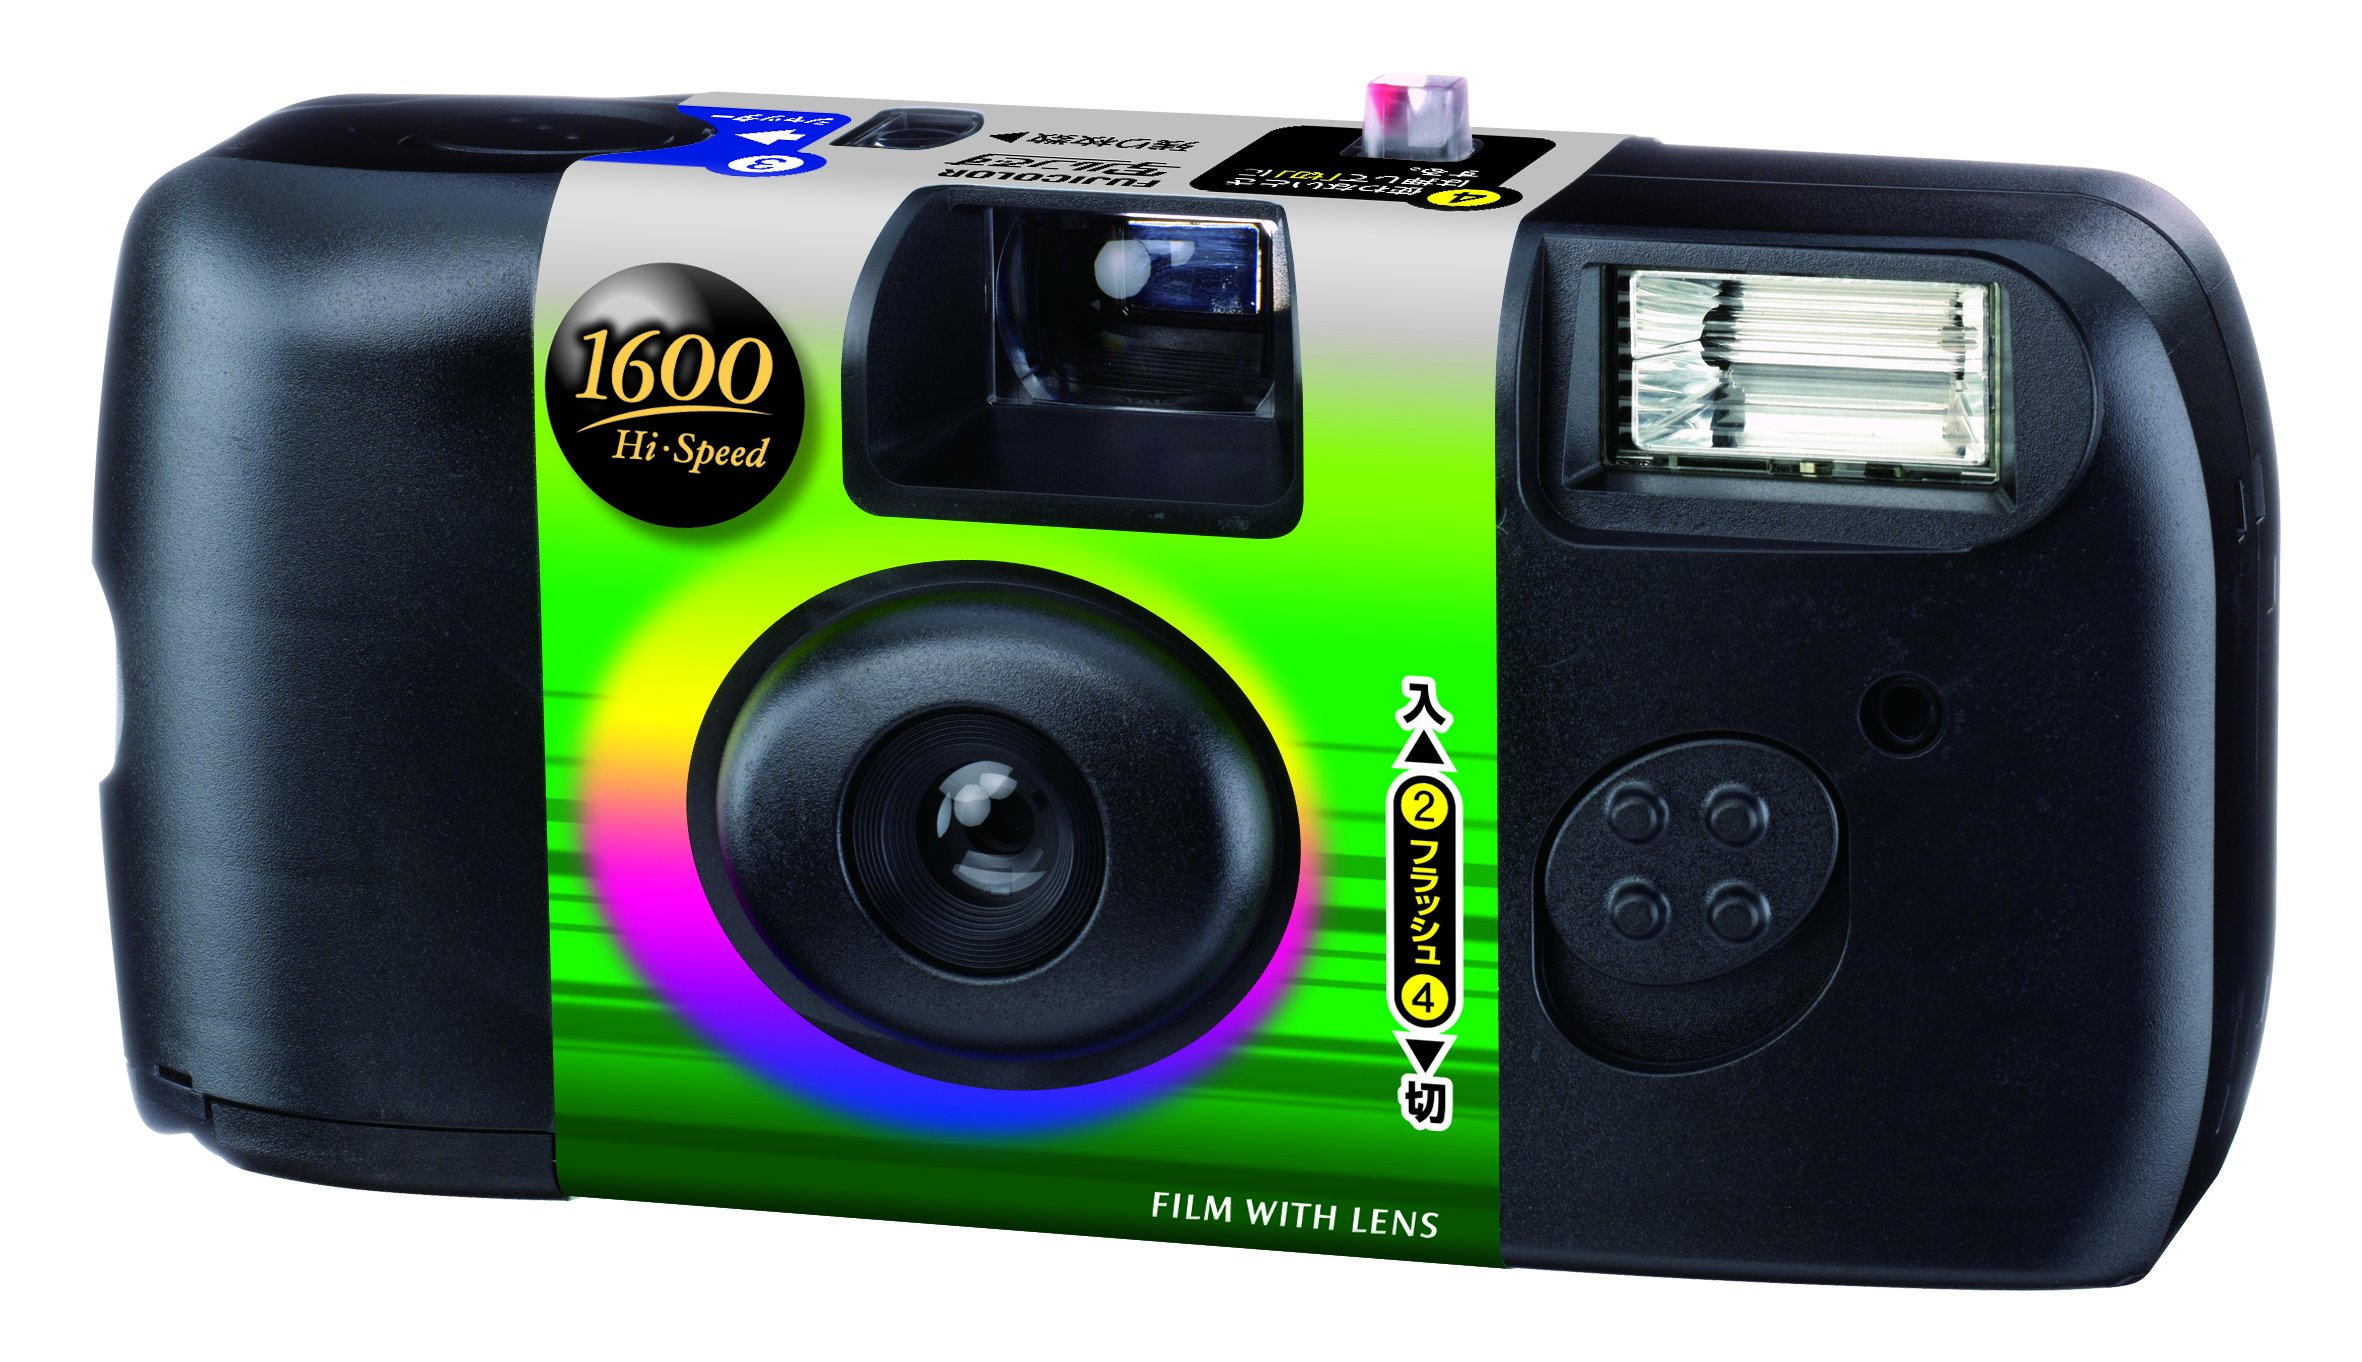 FUJIFILM Disposable Camera Fuji color Uturundesu 1600 Hi-Speed (High sensitivity, High speed) 39 pictures LF 1600HS-N FL 39SH 1